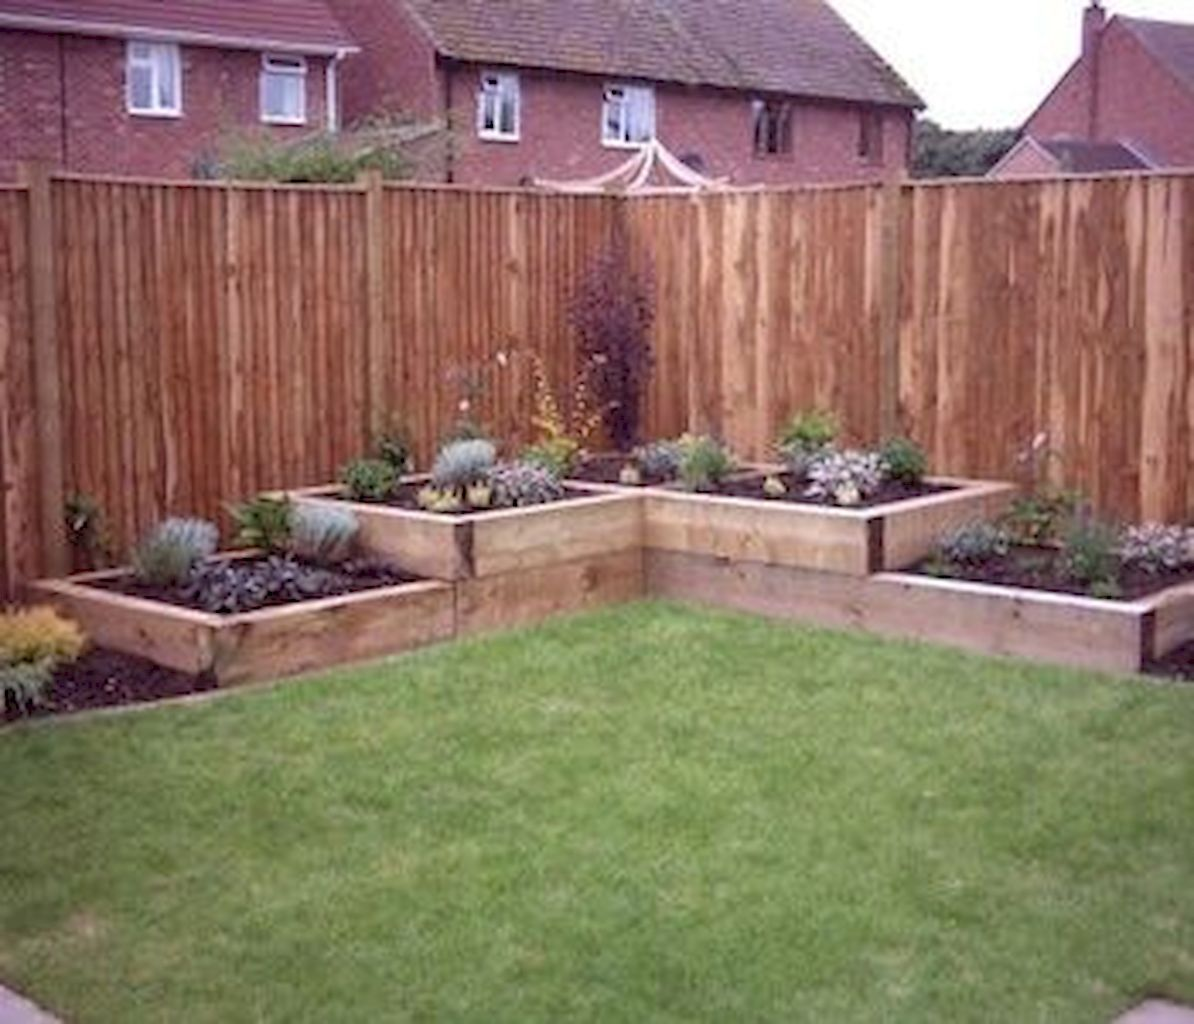 40 beautiful backyard landscaping ideas on a budget for Garden building ideas